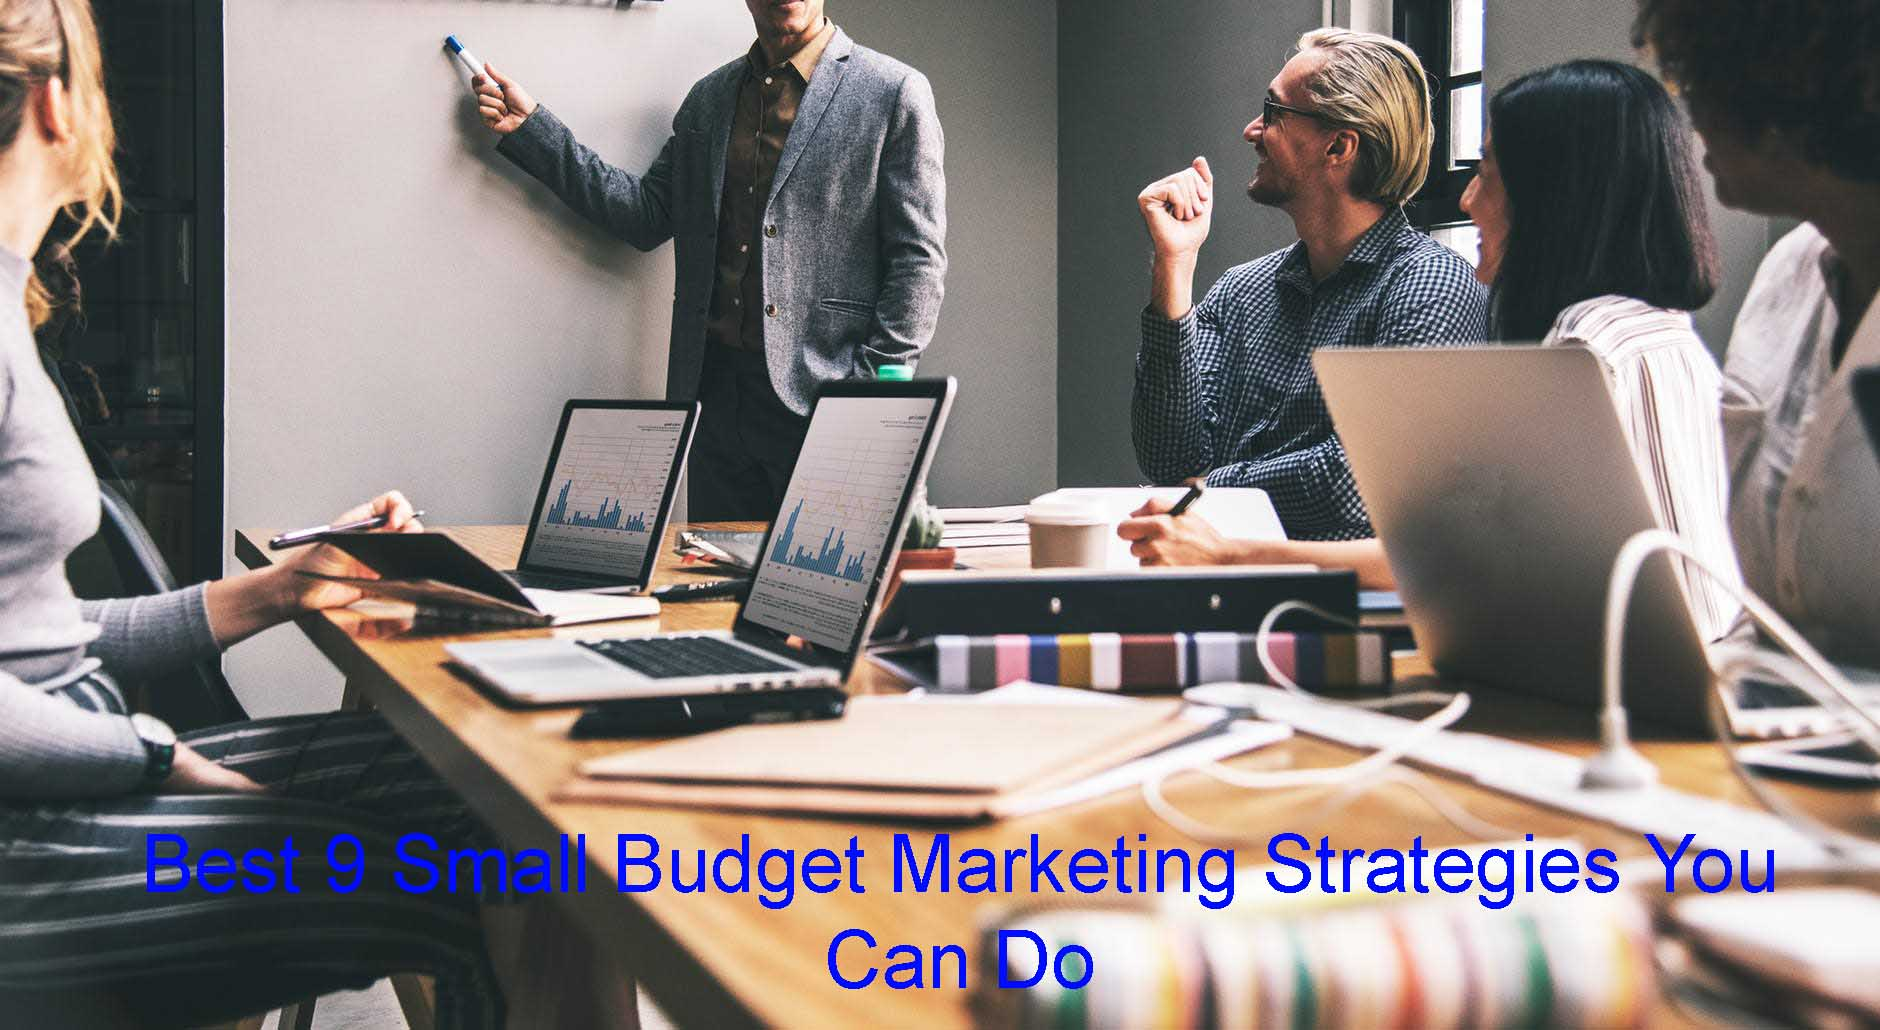 Best 9 Small Budget Marketing Strategies You Can Do